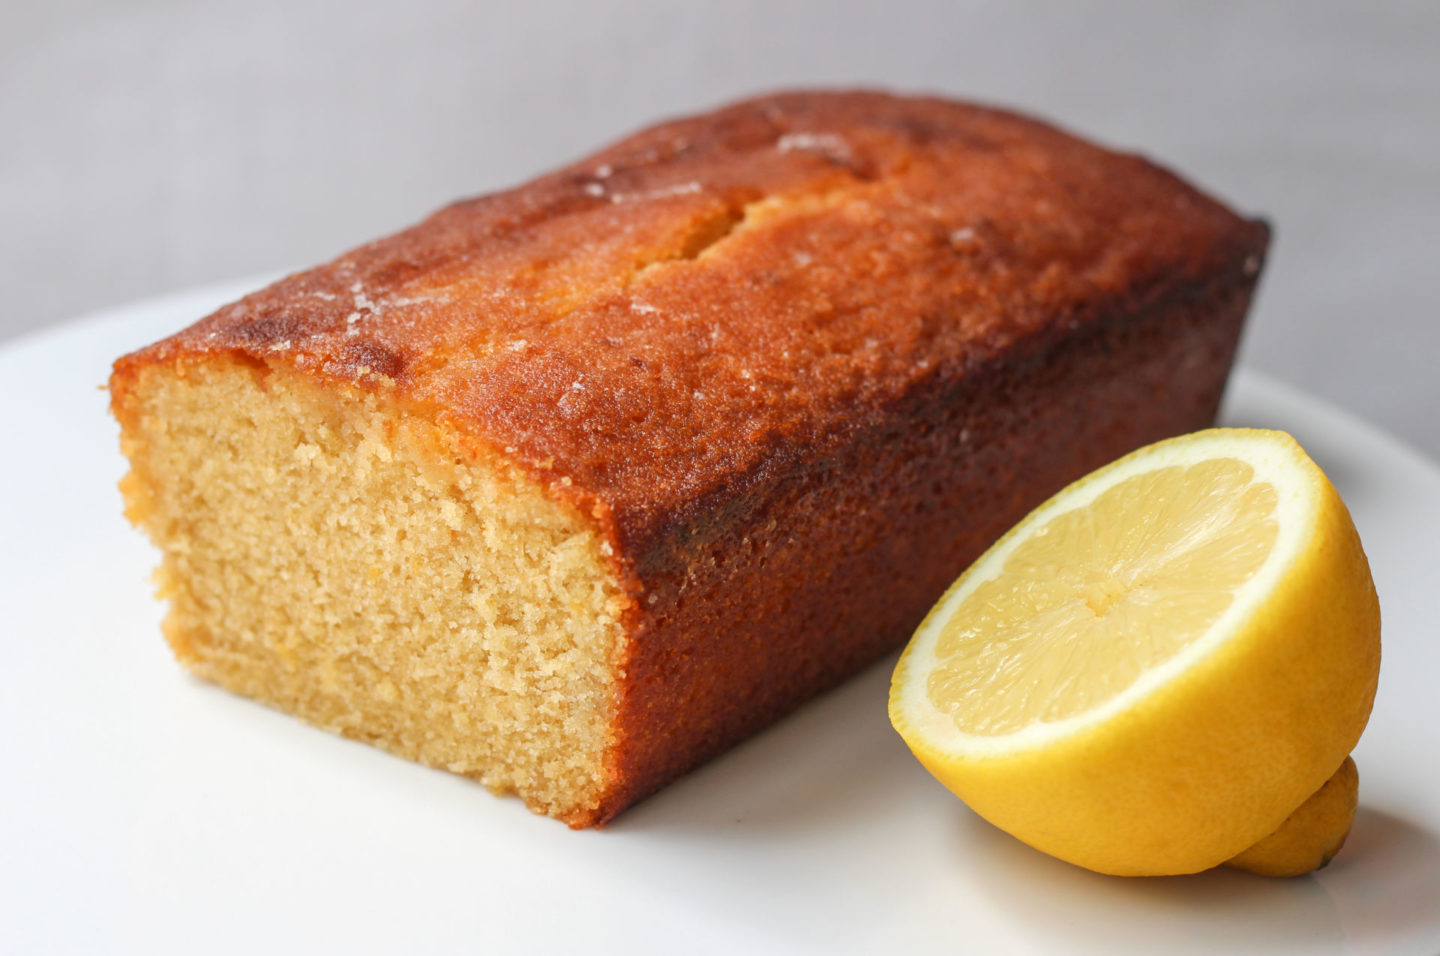 lemon drizzle loaf cake with lemon wedge